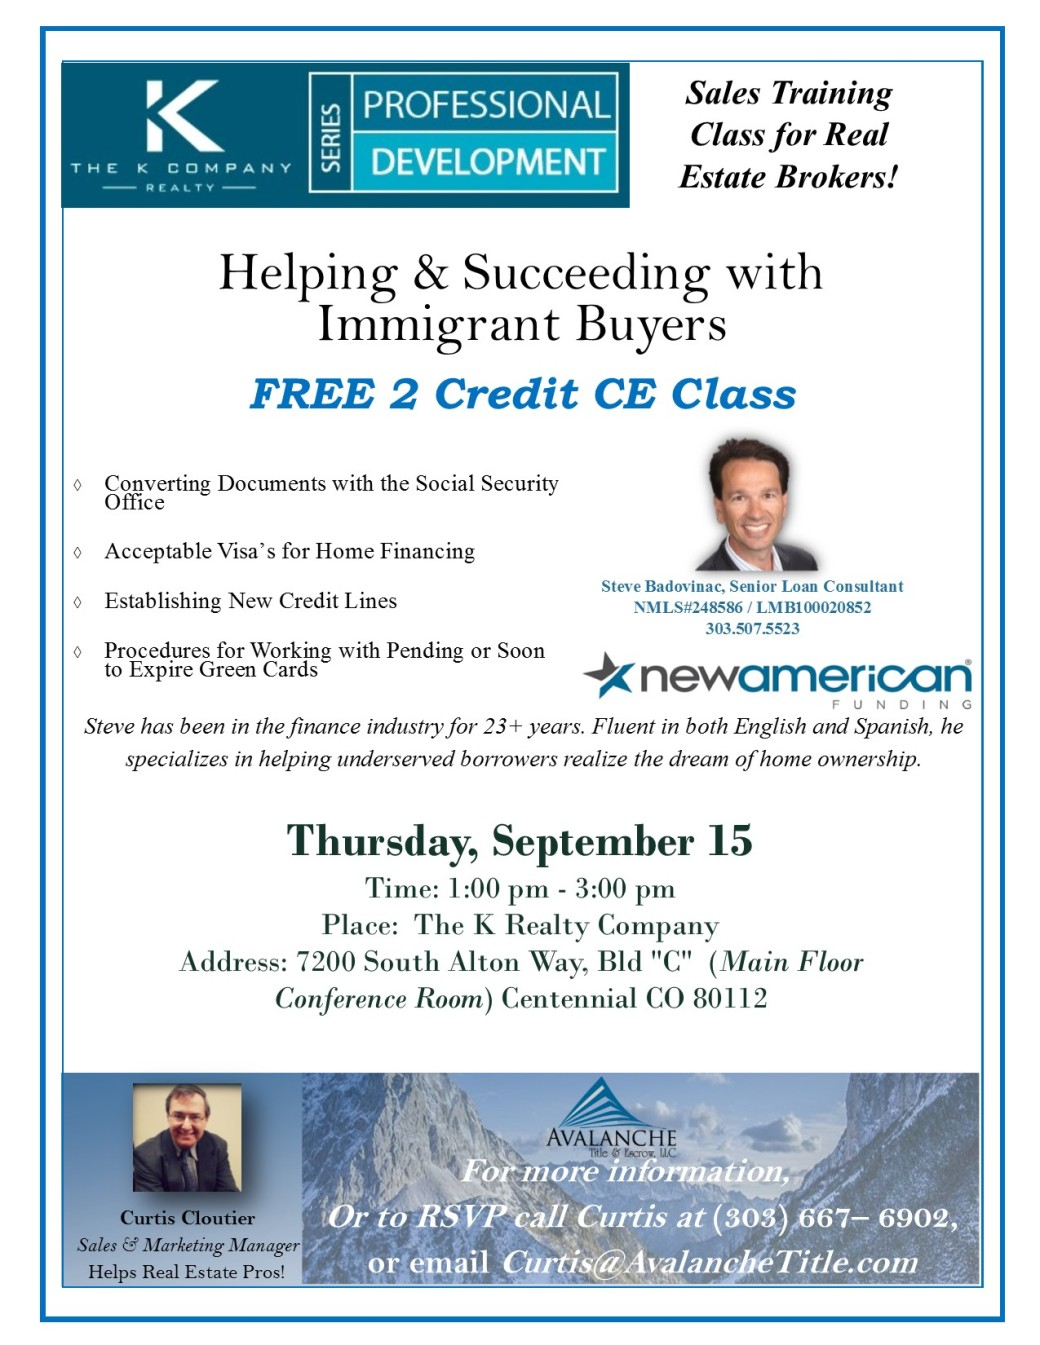 working-with-immigrant-buyers-steve-badovinac-september-15